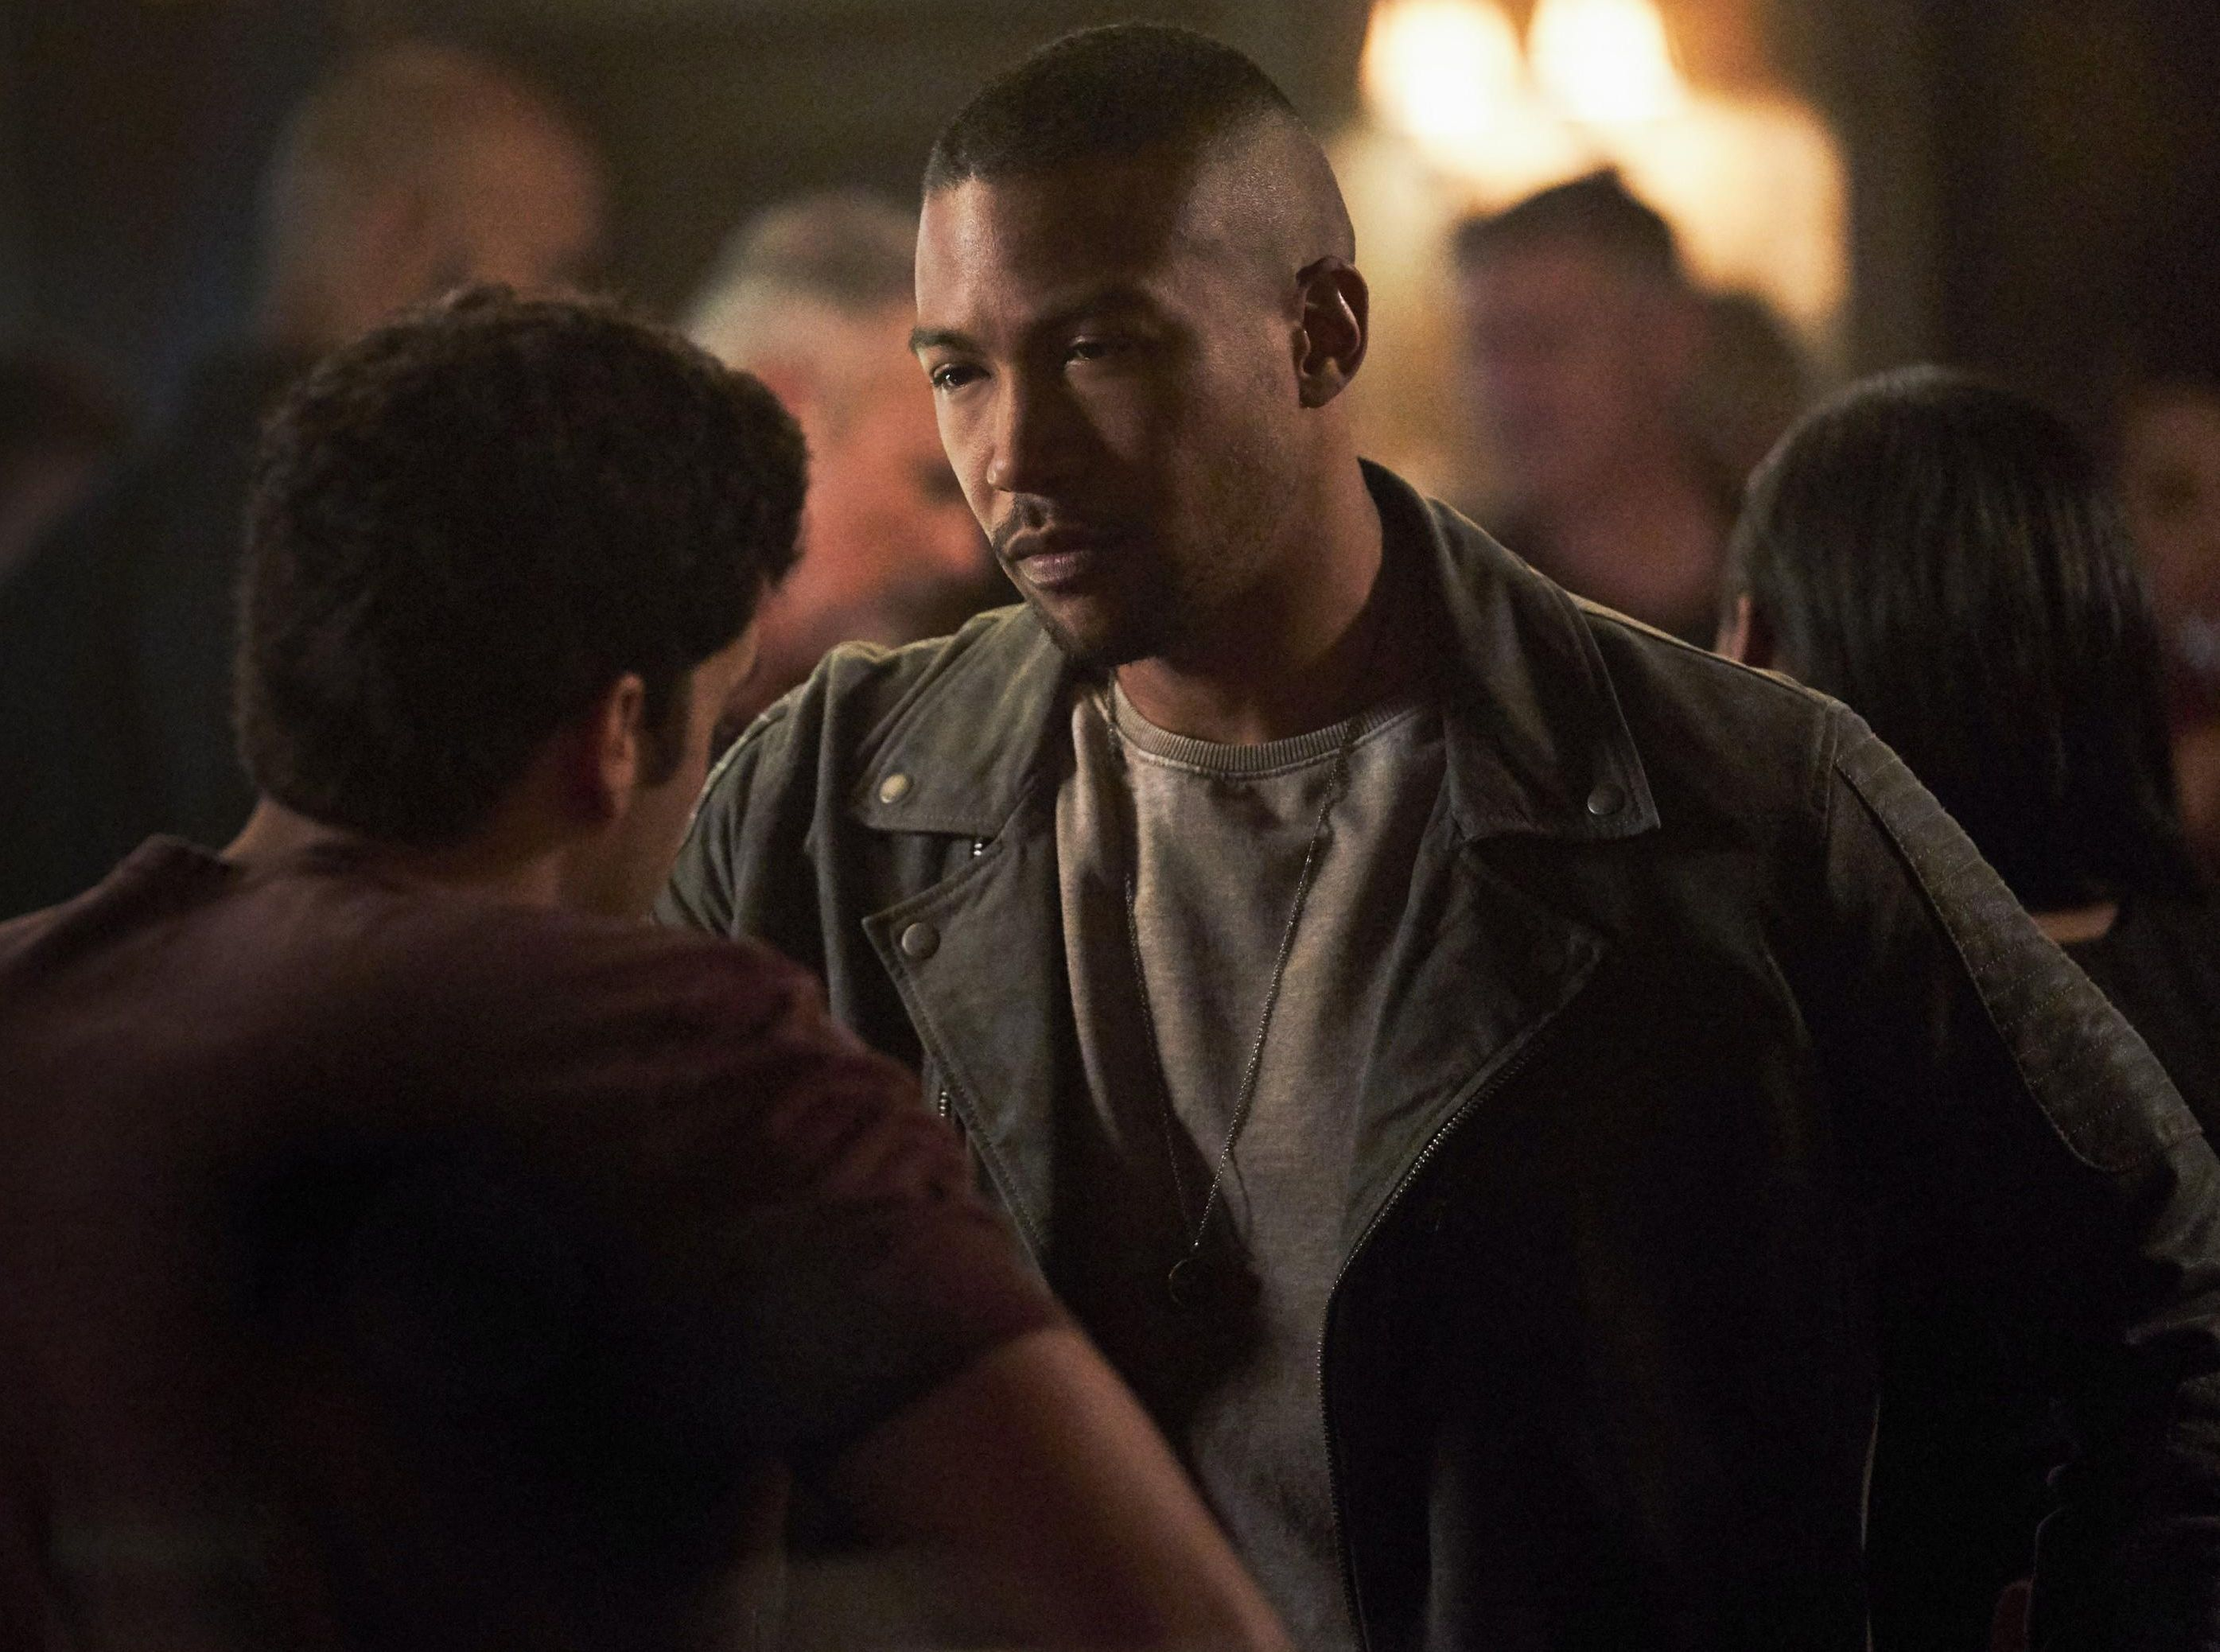 5*02 - One Wrong Turn On Bourbon (25/04/2018) The-originals-5x02-marcel